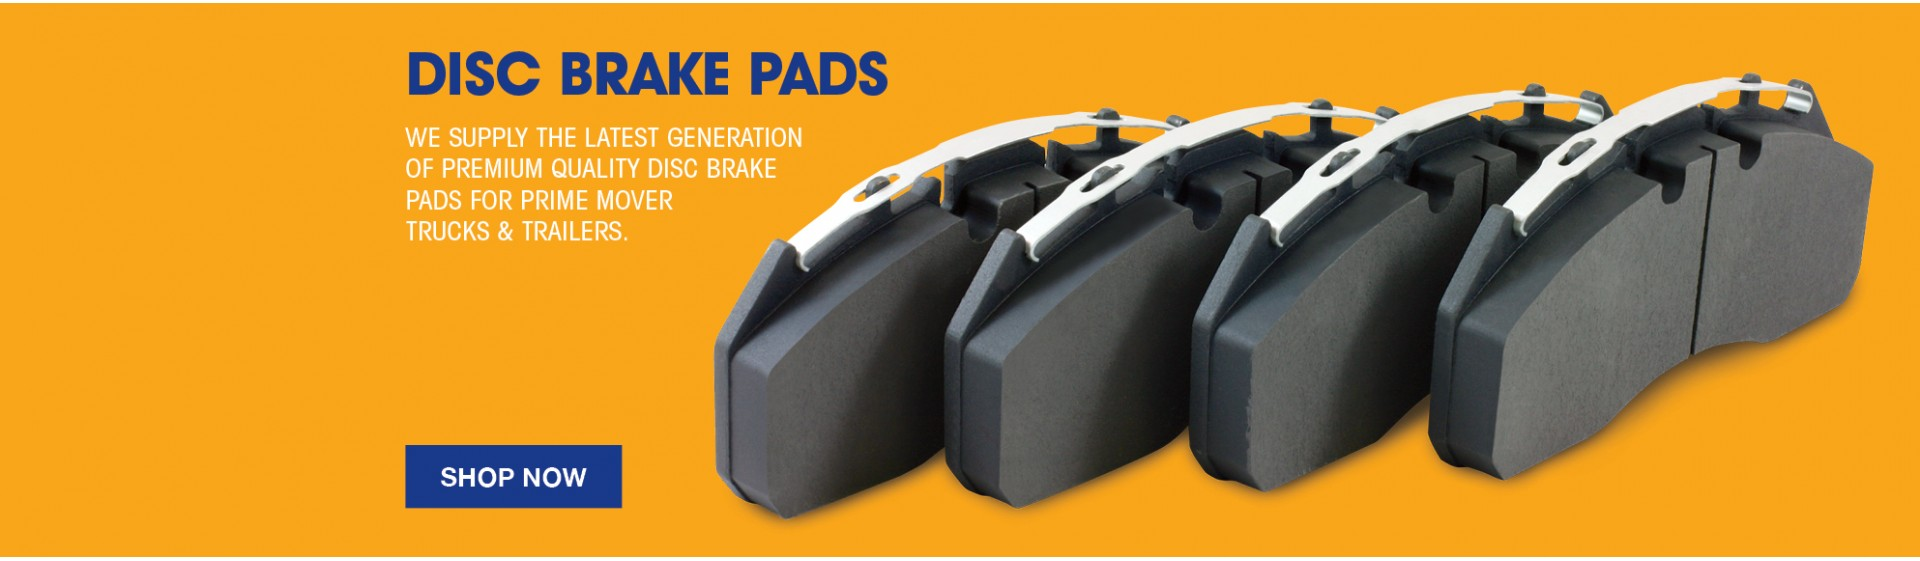 Truck Disk Brake Pads